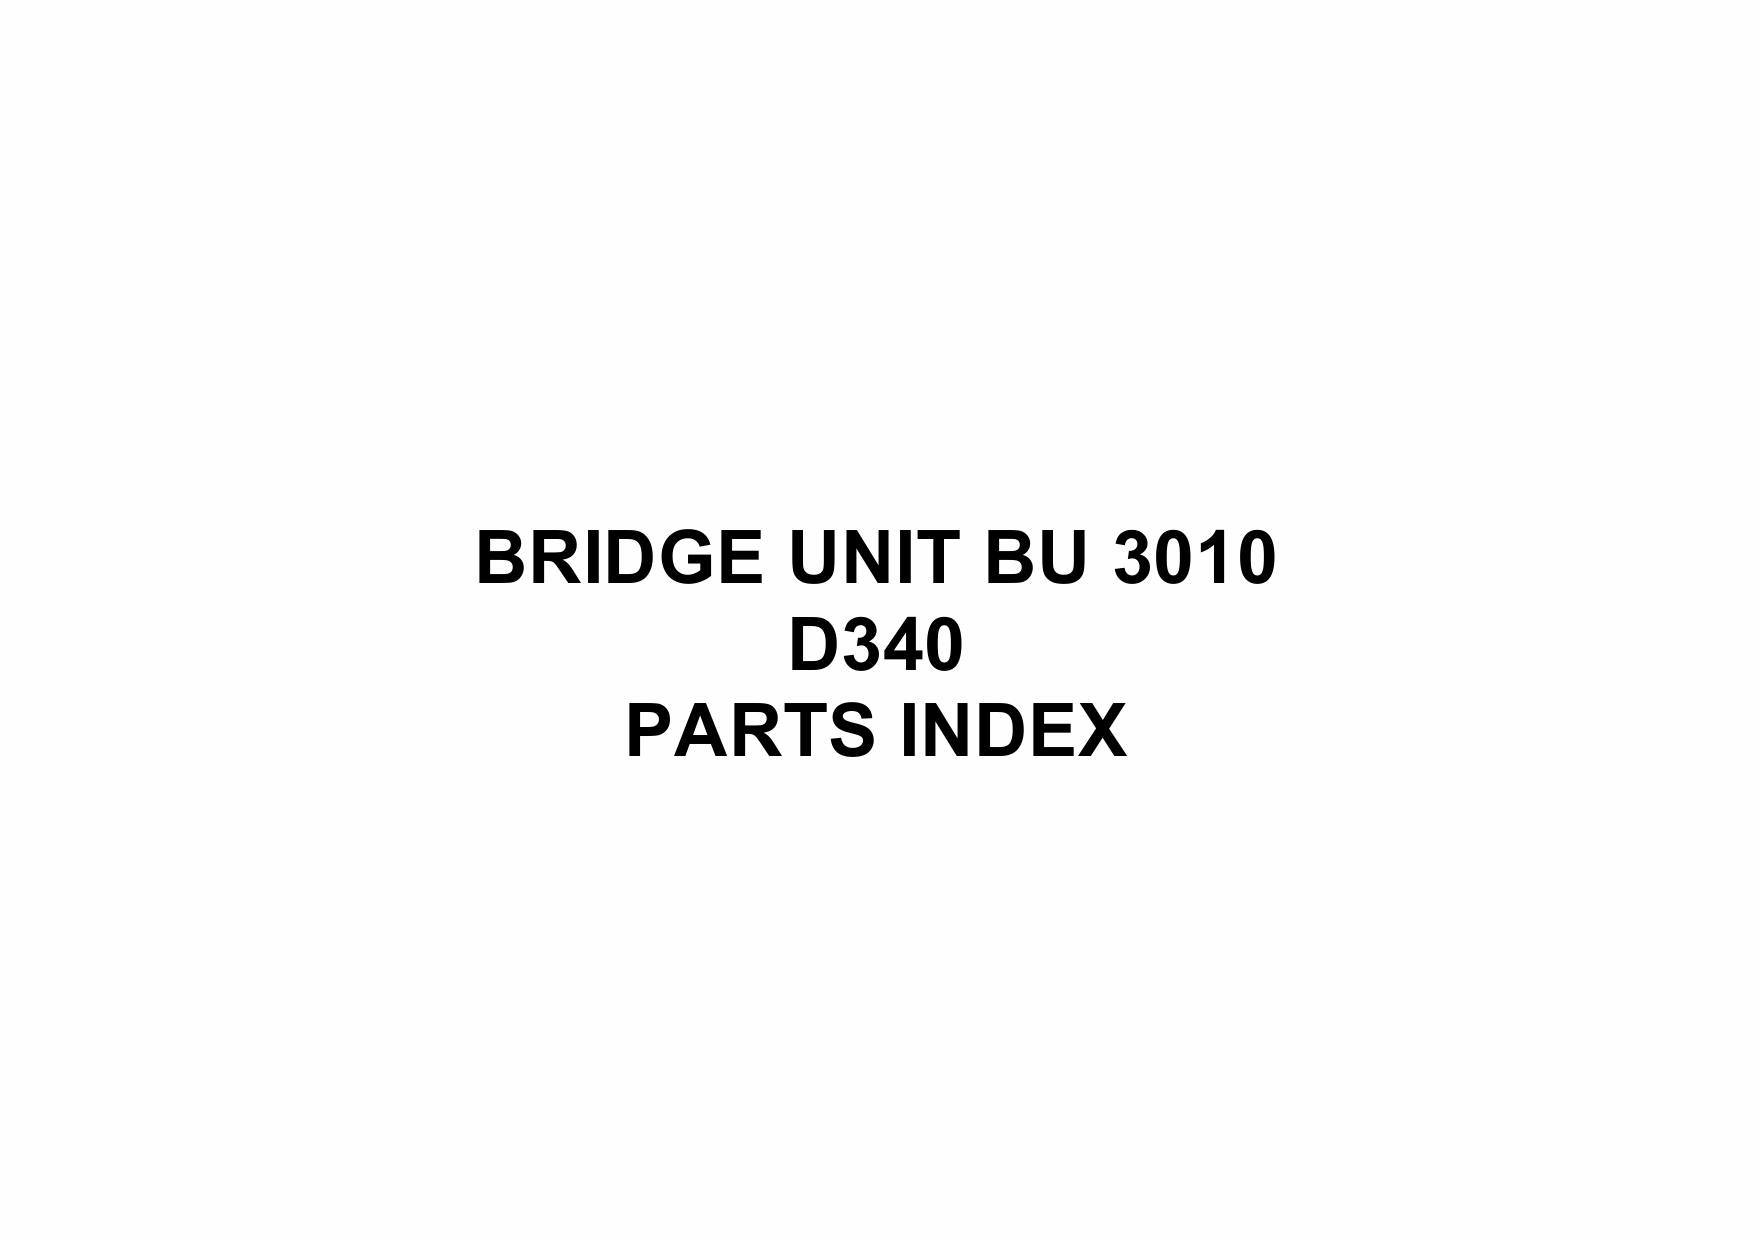 RICOH Options D340 BRIDGE-UNIT-BU-3010 Parts Catalog PDF download-5